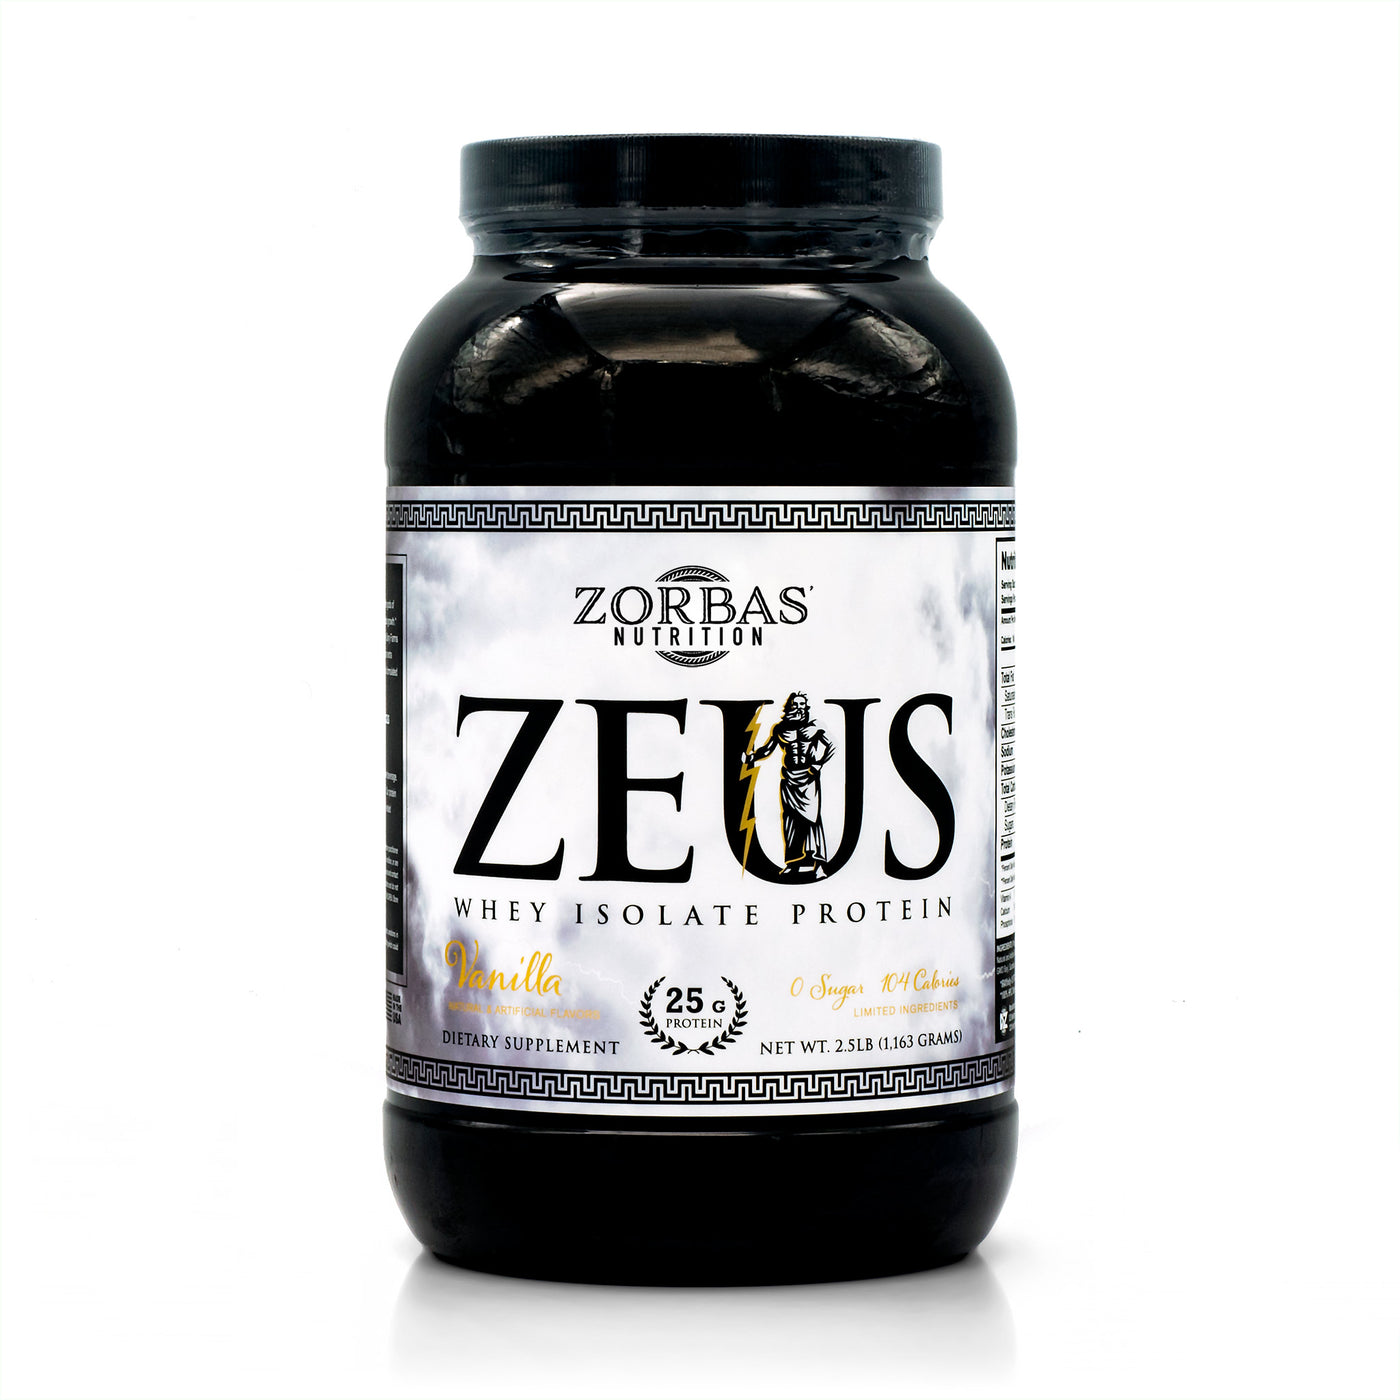 Zeus — Whey Isolate Protein — Greek God Supplements